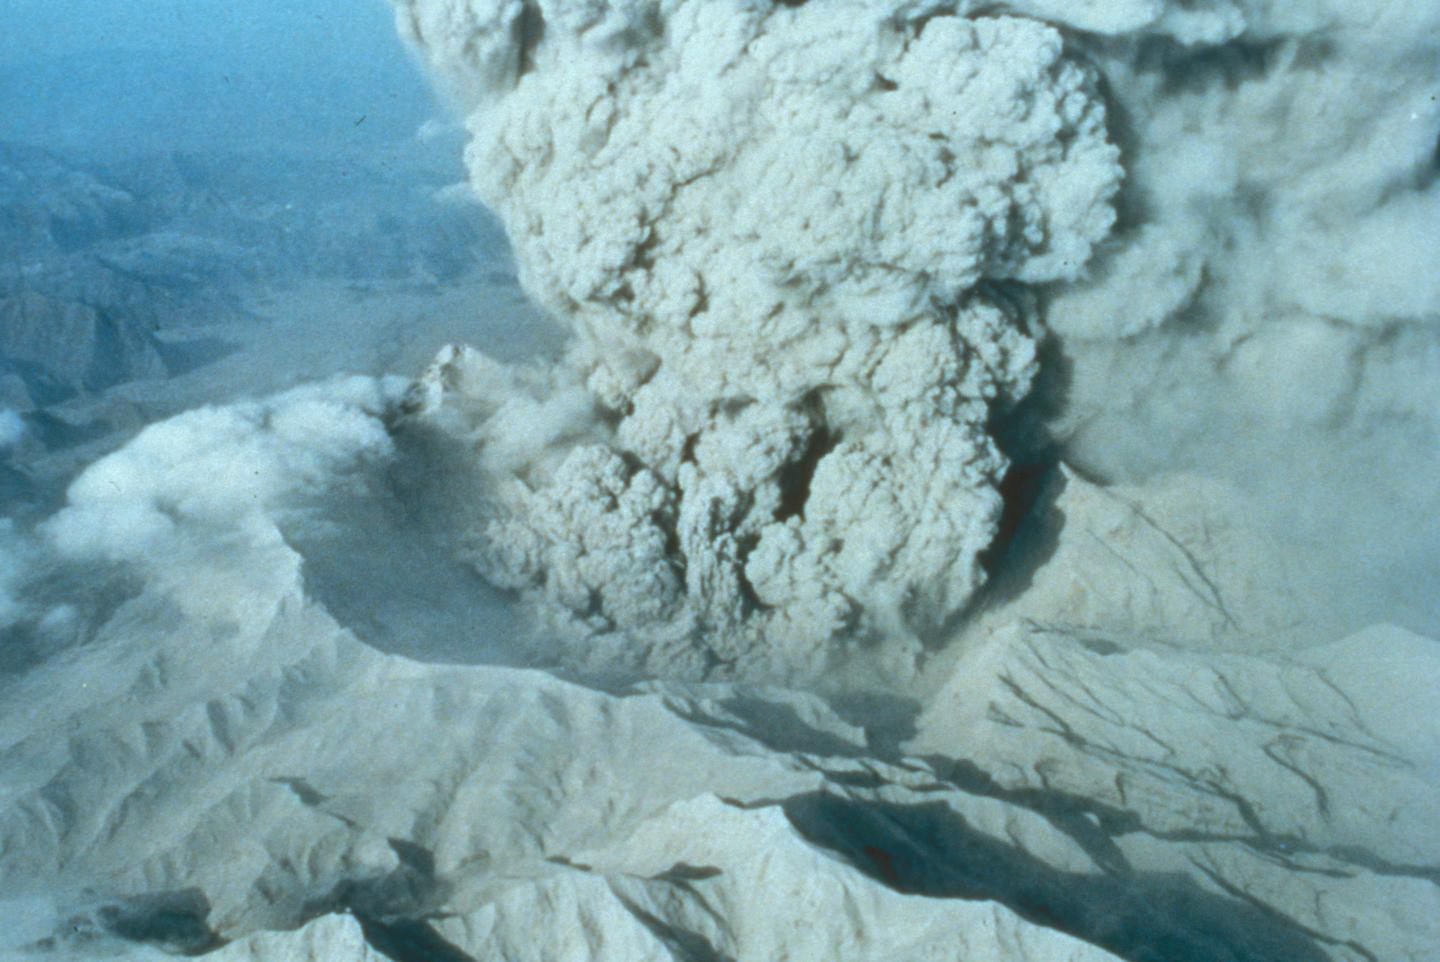 The caldera of Mount Pinatubo on June 22, 1991. CREDIT Courtesy of USGS.